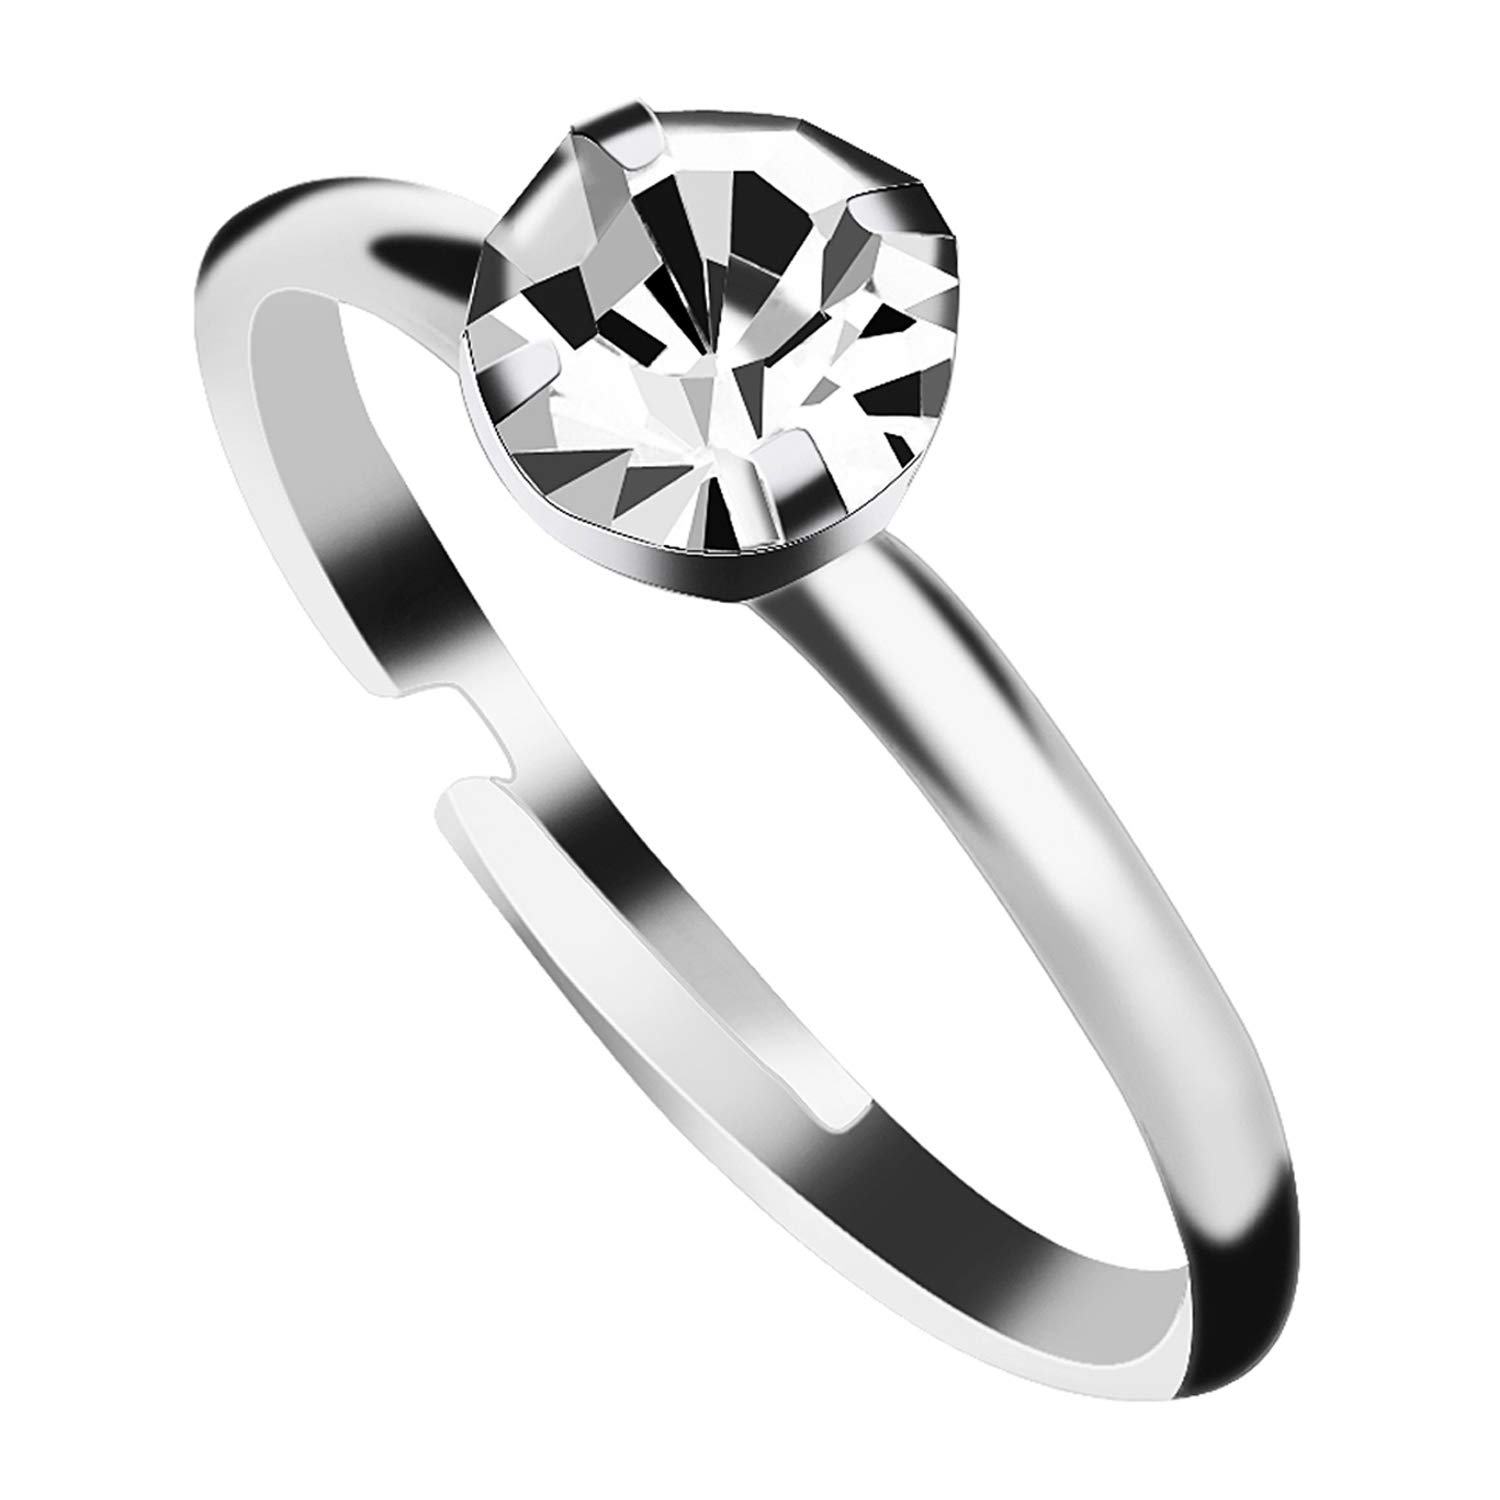 Aboat 100 Pack Silver Diamond Bridal Shower Rings for Wedding Table Decorations, Party Favors